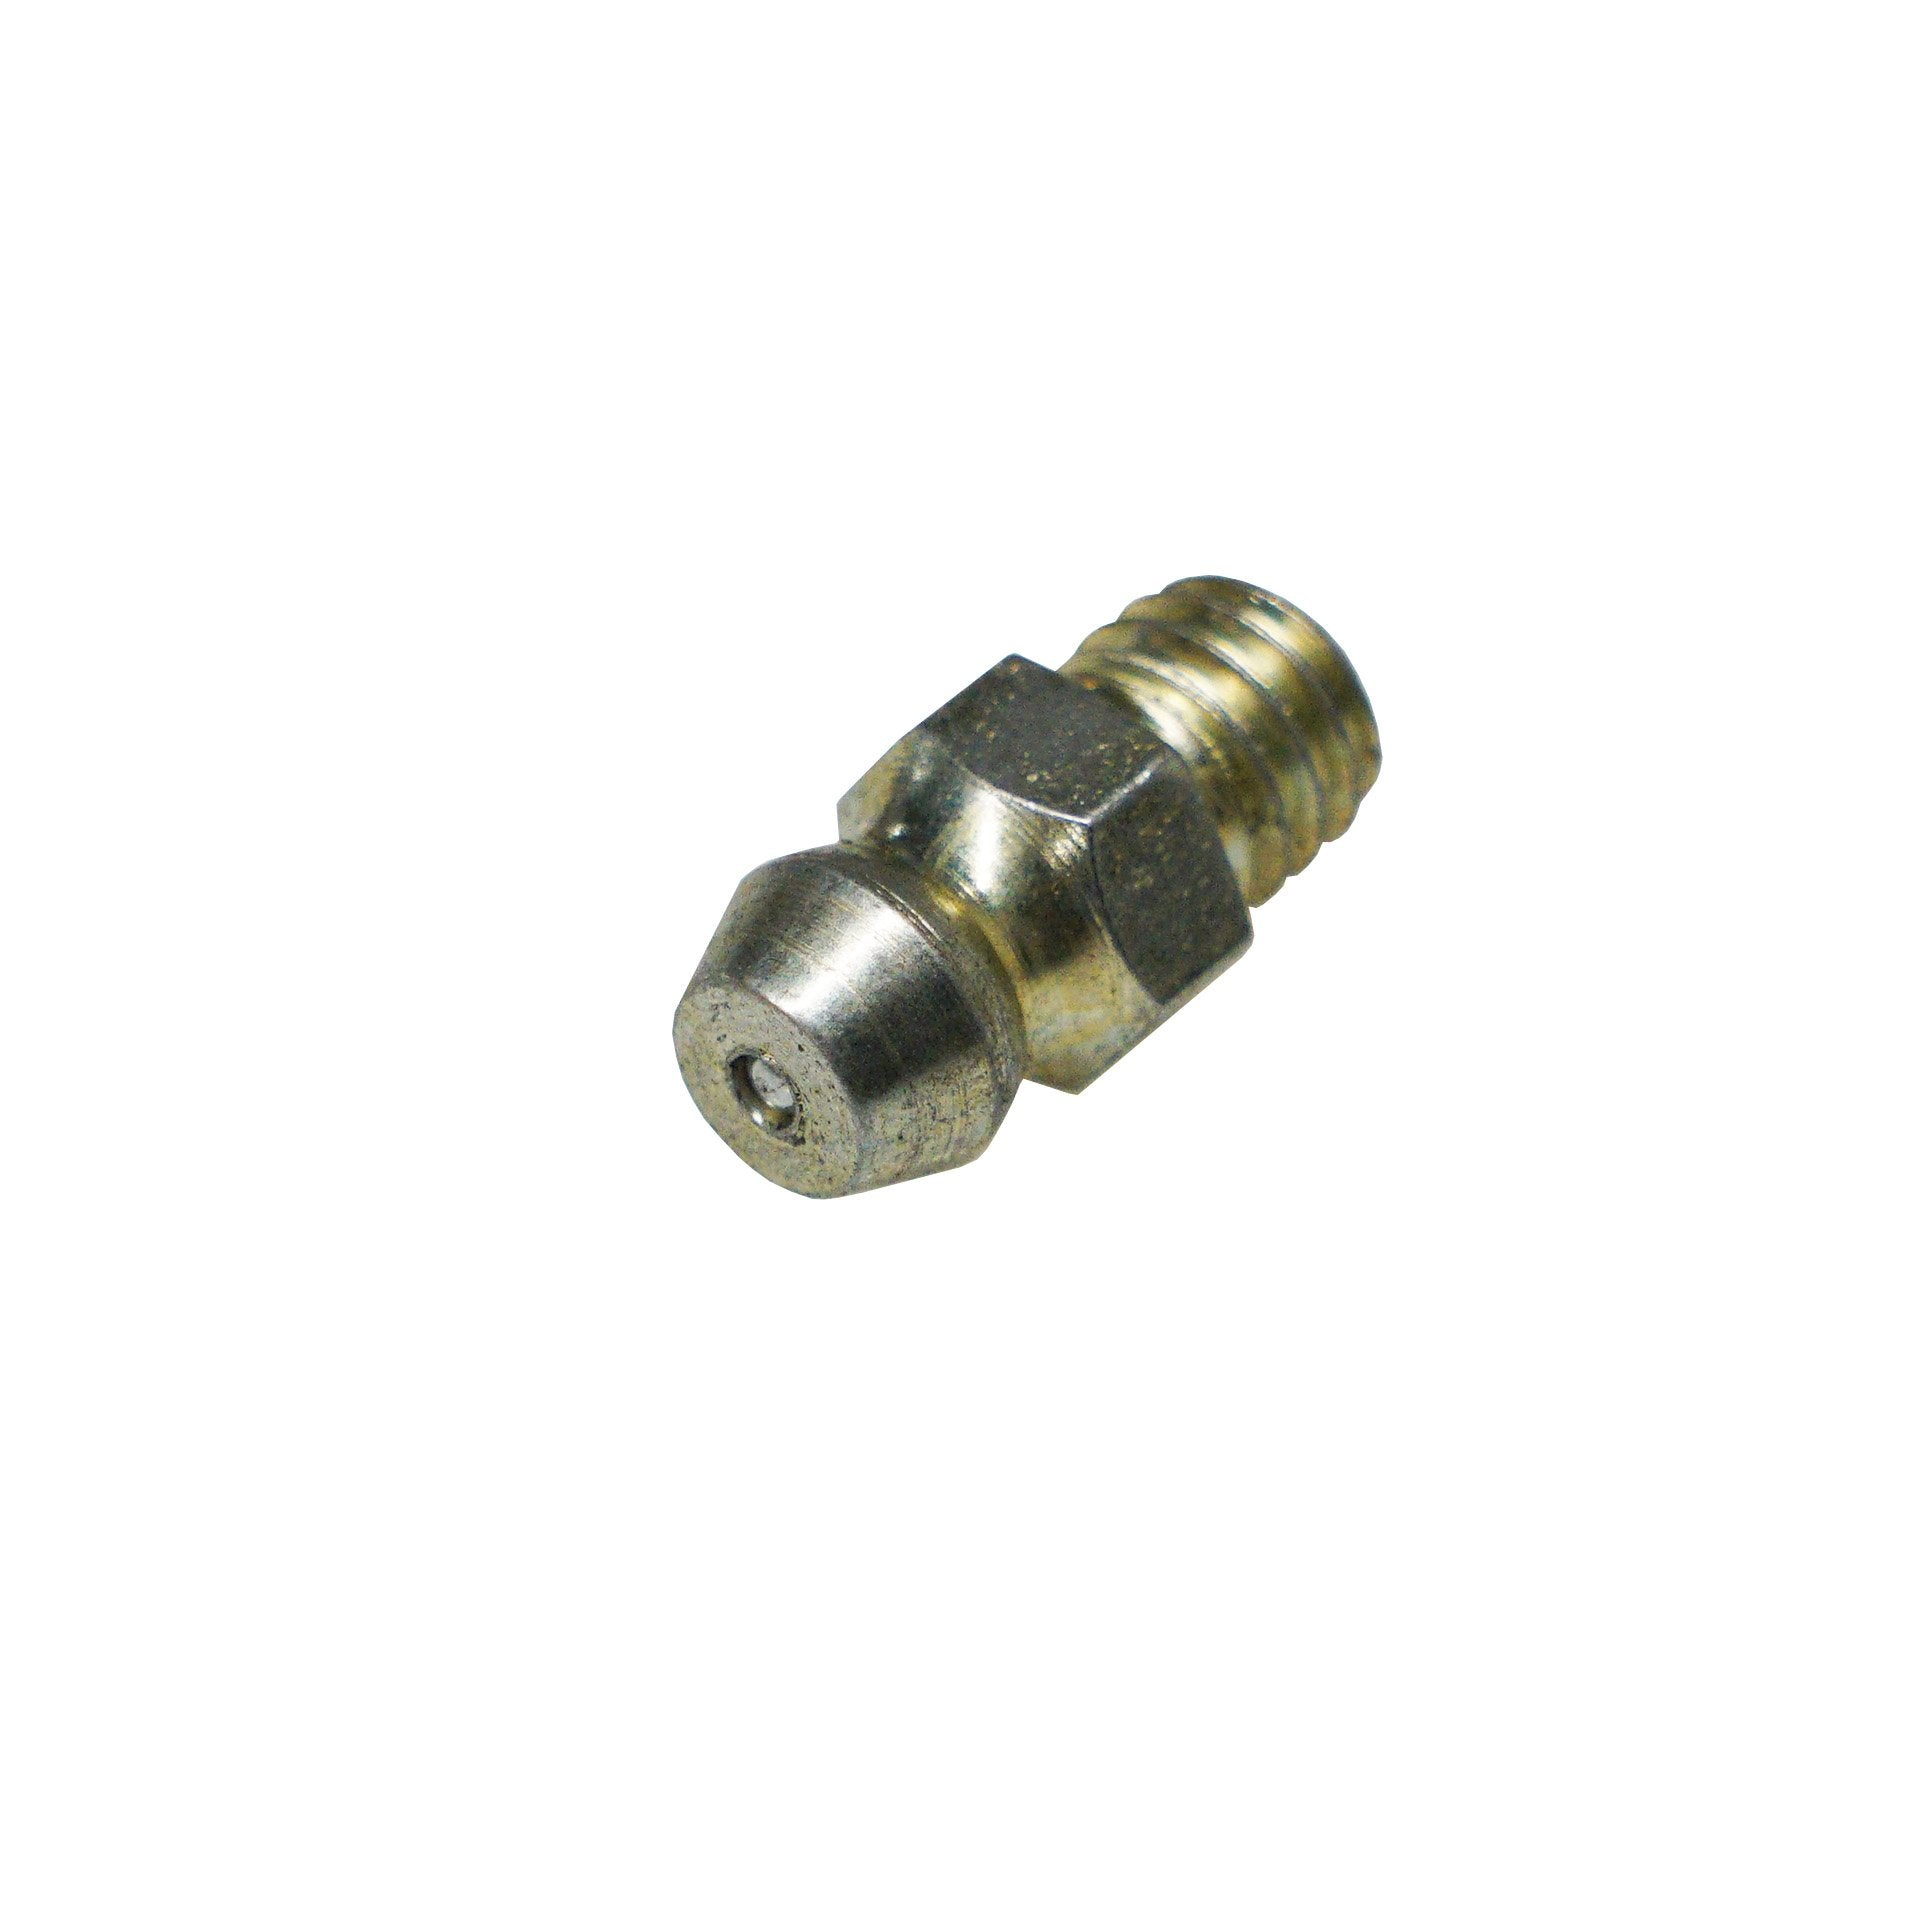 Grease Fitting SKU: 70880-FA000